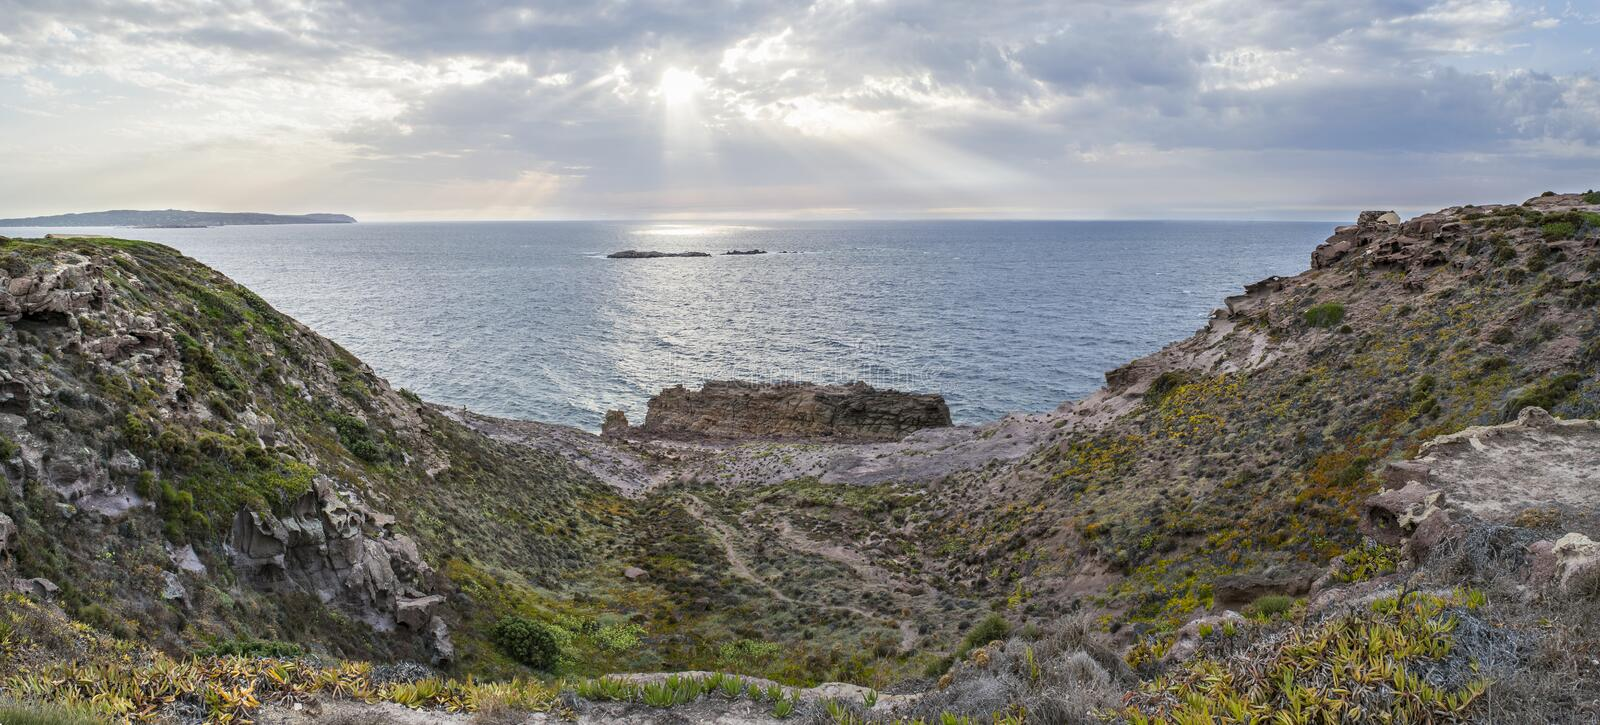 Capo Altano. Is a particular place of the Sulcis in Sardinia, Italy stock photography